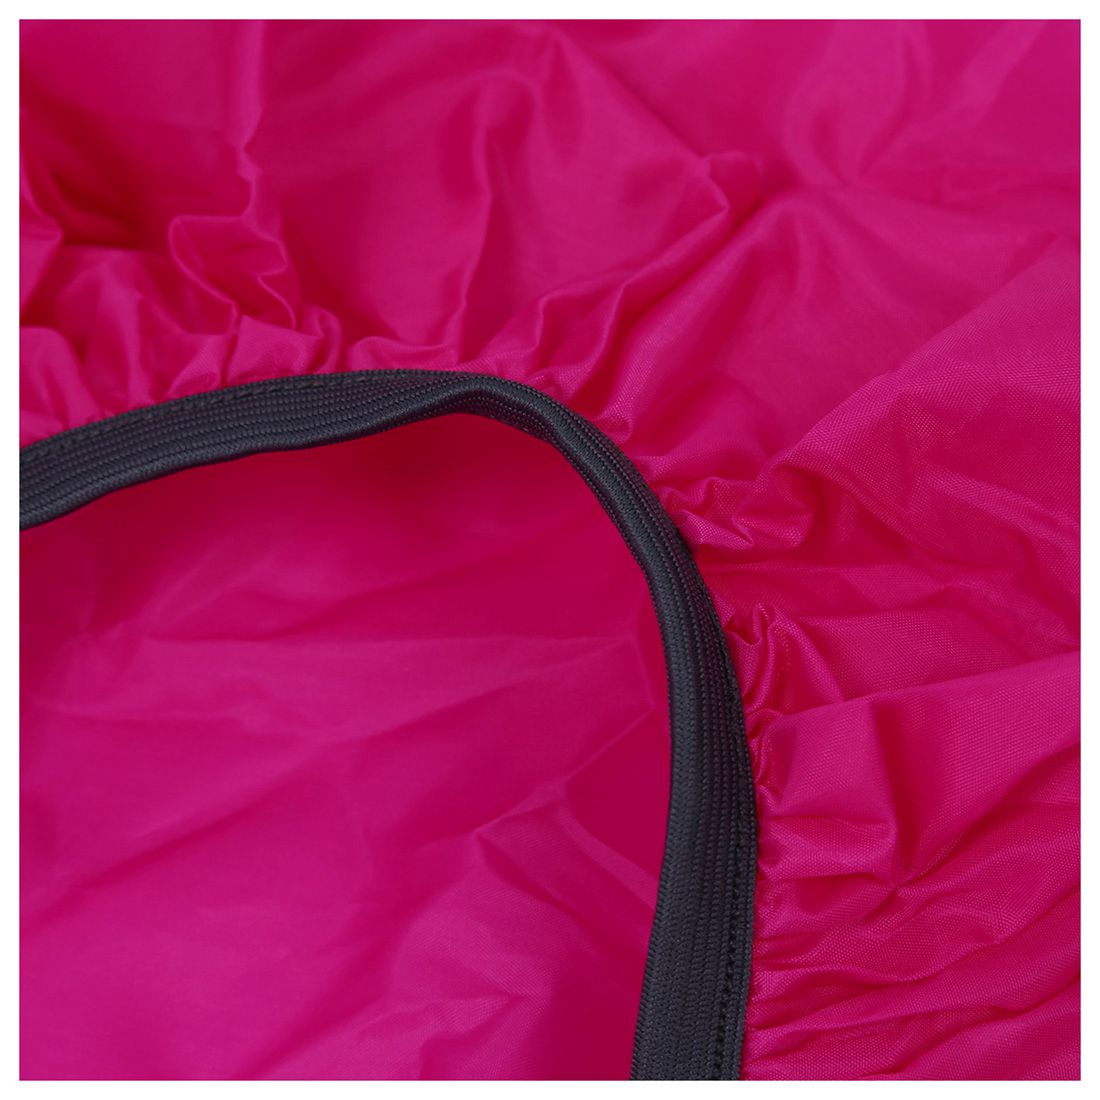 New Waterproof Travel Accessory Backpack Dust Rain Cover 35L,Rose Red